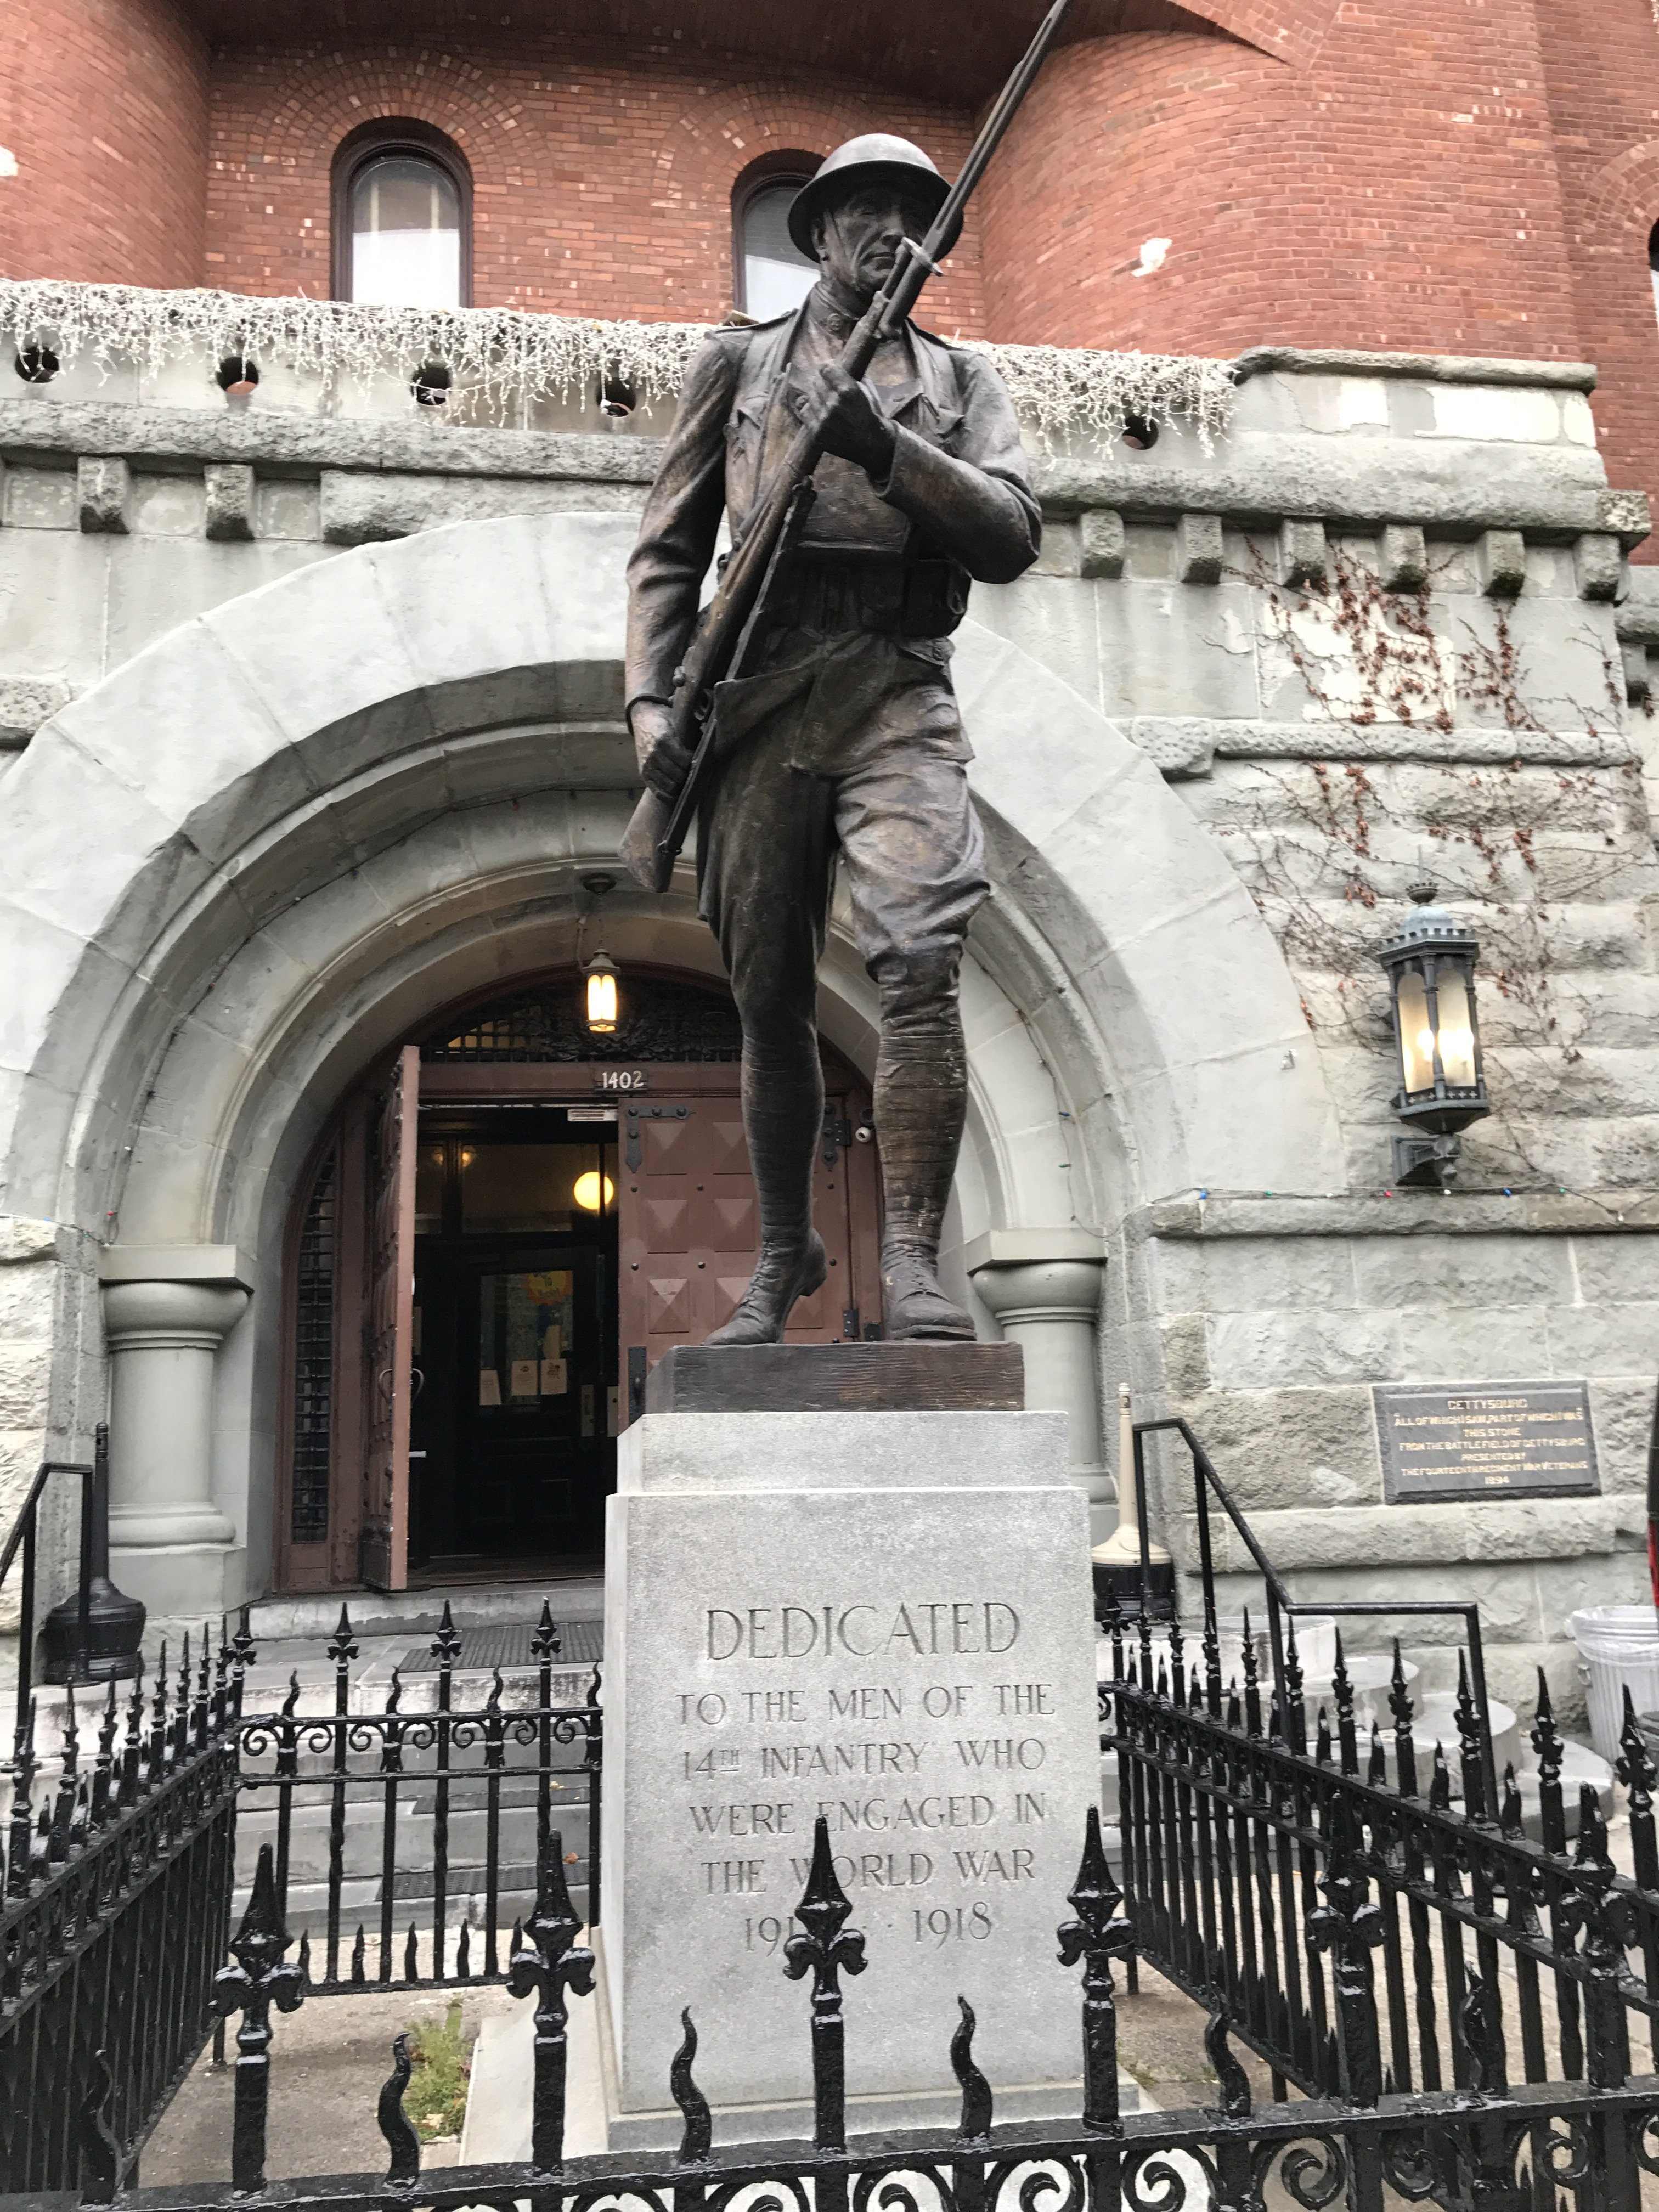 Front of Statue, outside of Park Slope Armory, YMCA. Bronze depiction a World War I Infantry soldier or Doughboy- on 8th Avenue side of building, intersection between 8th Avenue and 15th StreetPhotographer: